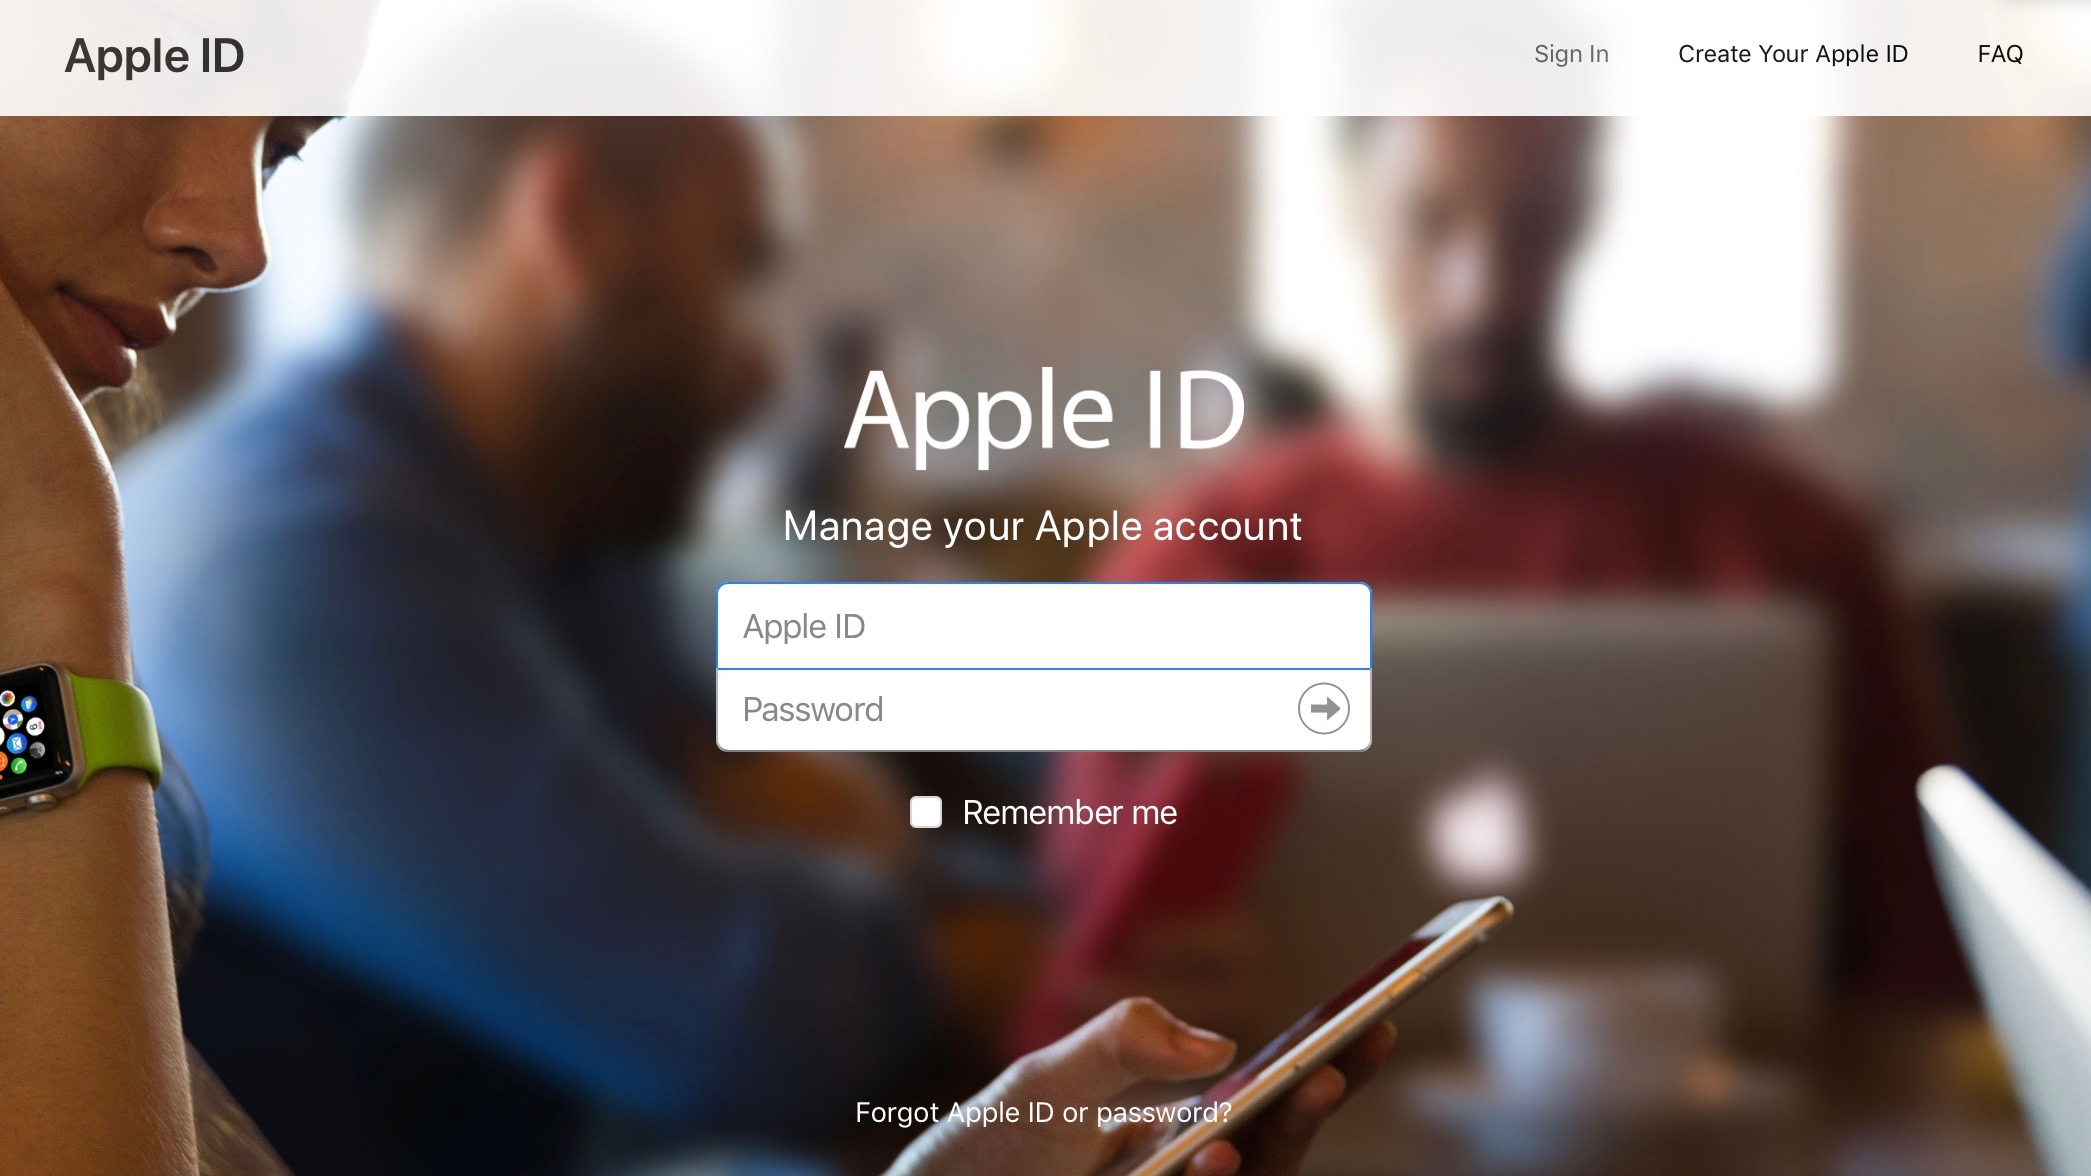 psa latest apple id phishing scam tricks you into thinking you ve subscribed to spotify premium